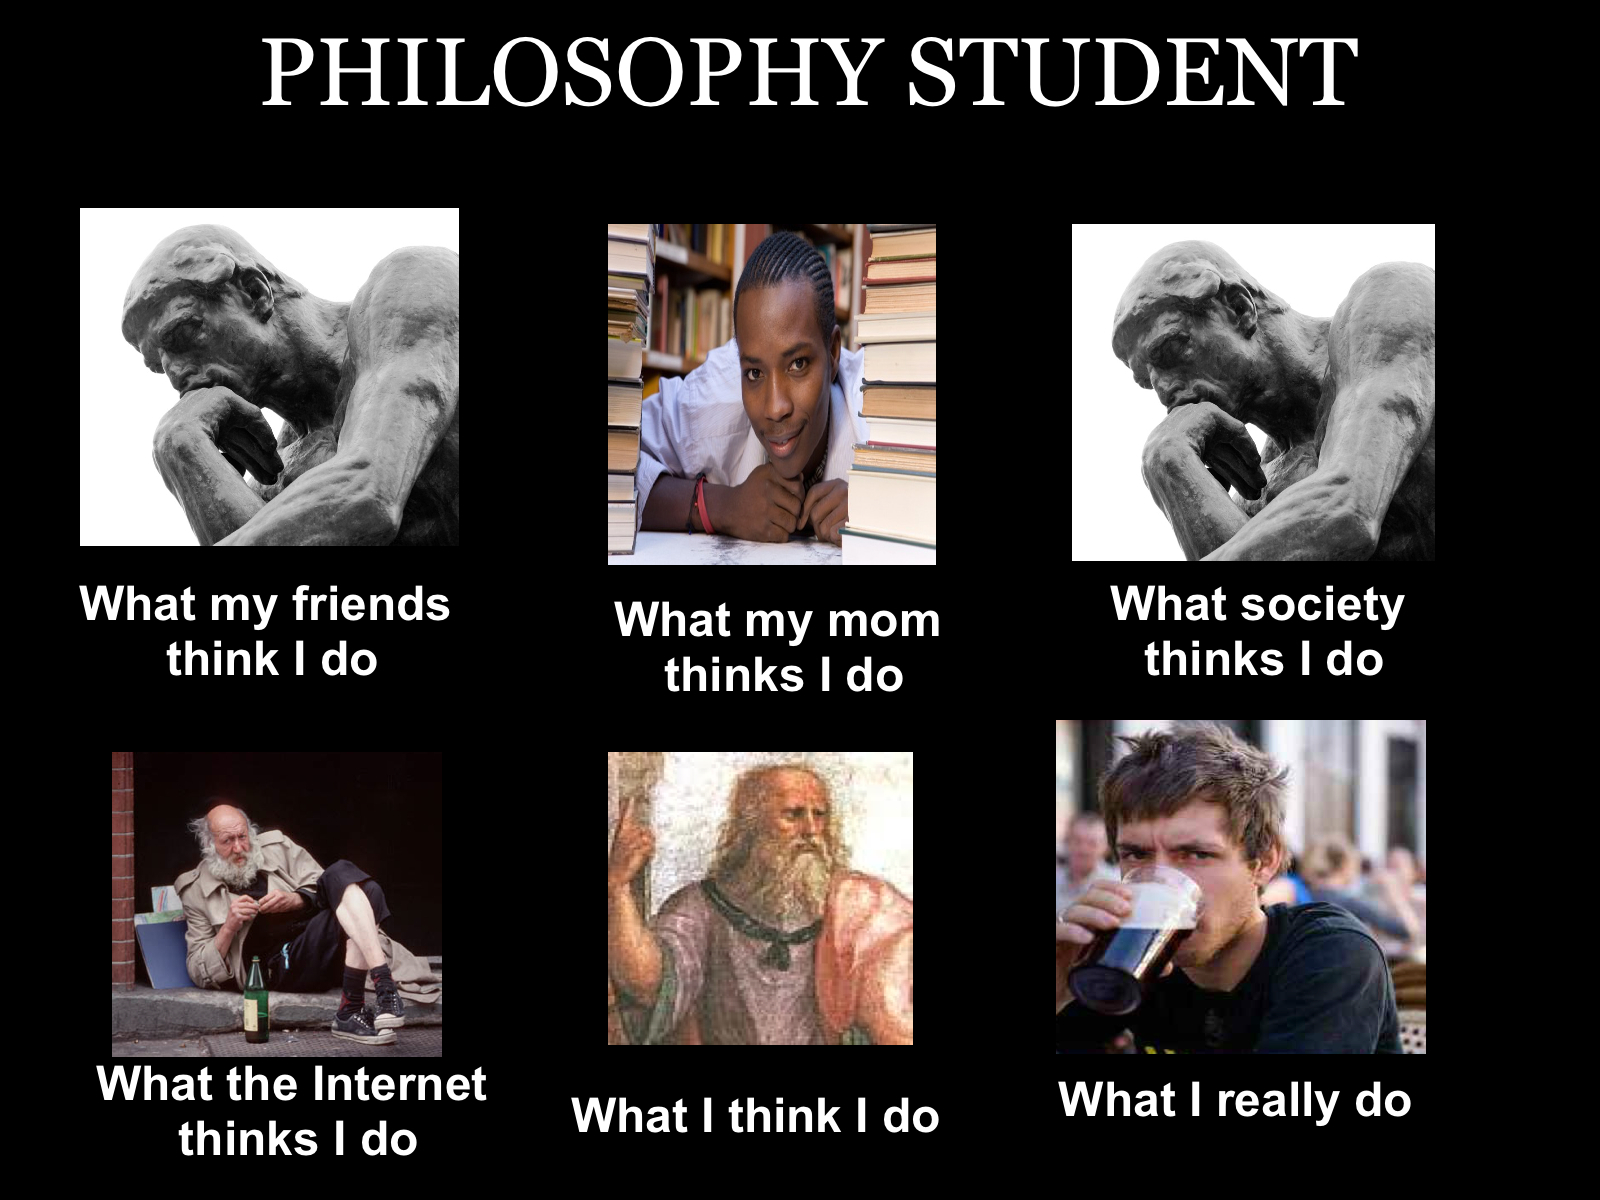 Funny Kant Touch This Hilarious Philosophy Meme - Kant ... |Funny Philosophy Memes